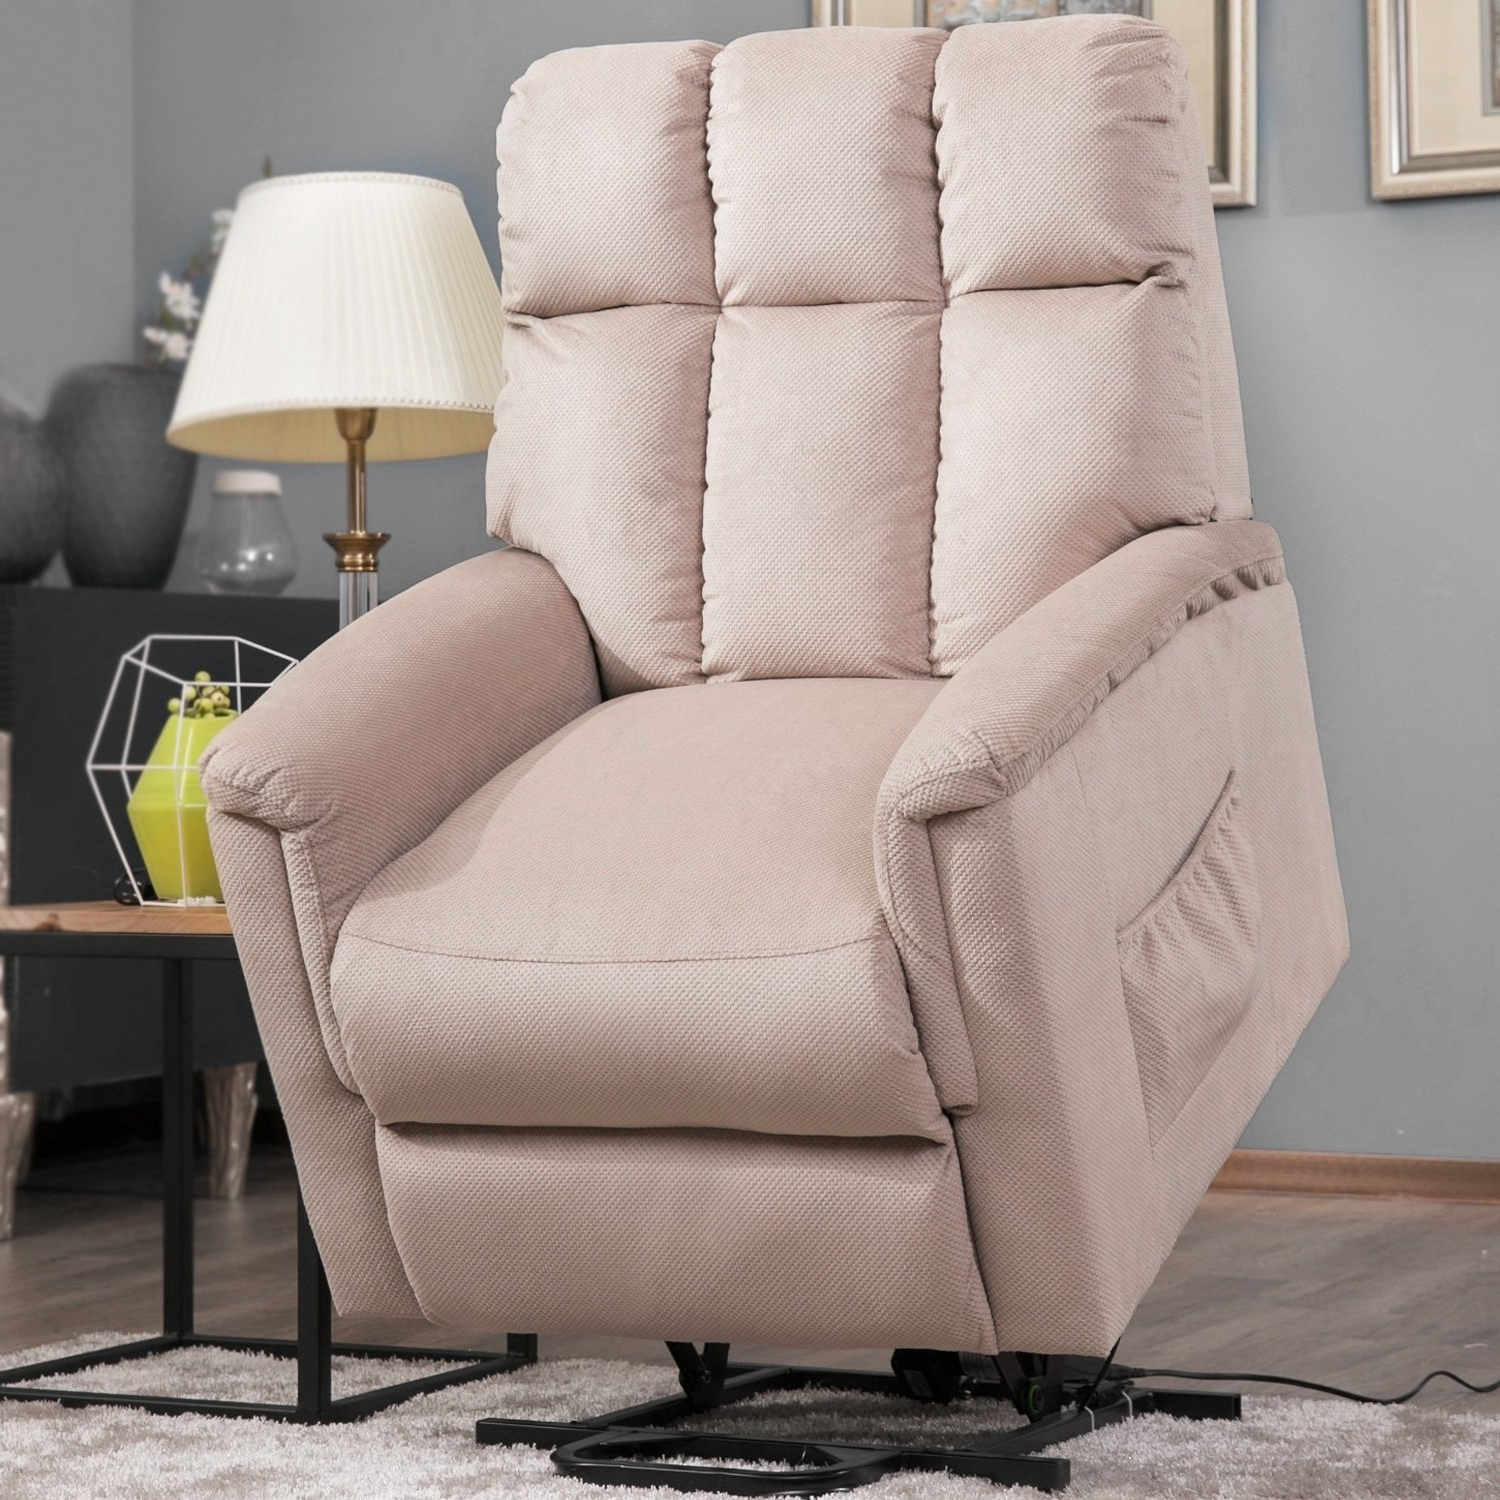 Well Known Harper Down Oversized Sofa Chairs For Shop Harper & Bright Designs Power Lift Chair Soft Fabric Recliner (Gallery 9 of 20)